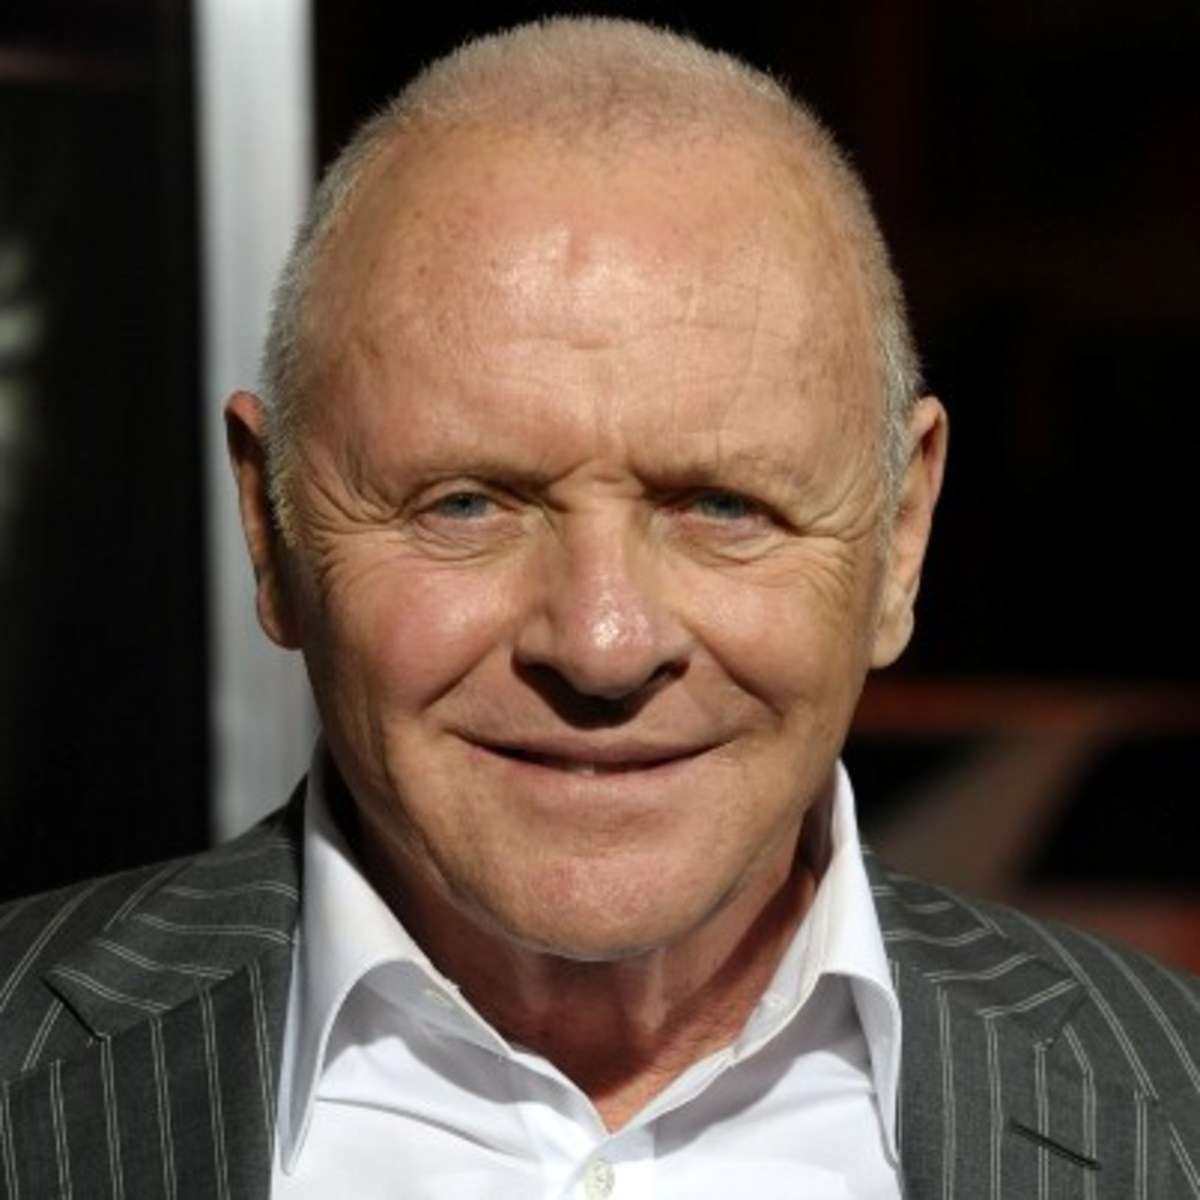 How tall is Anthony Hopkins?